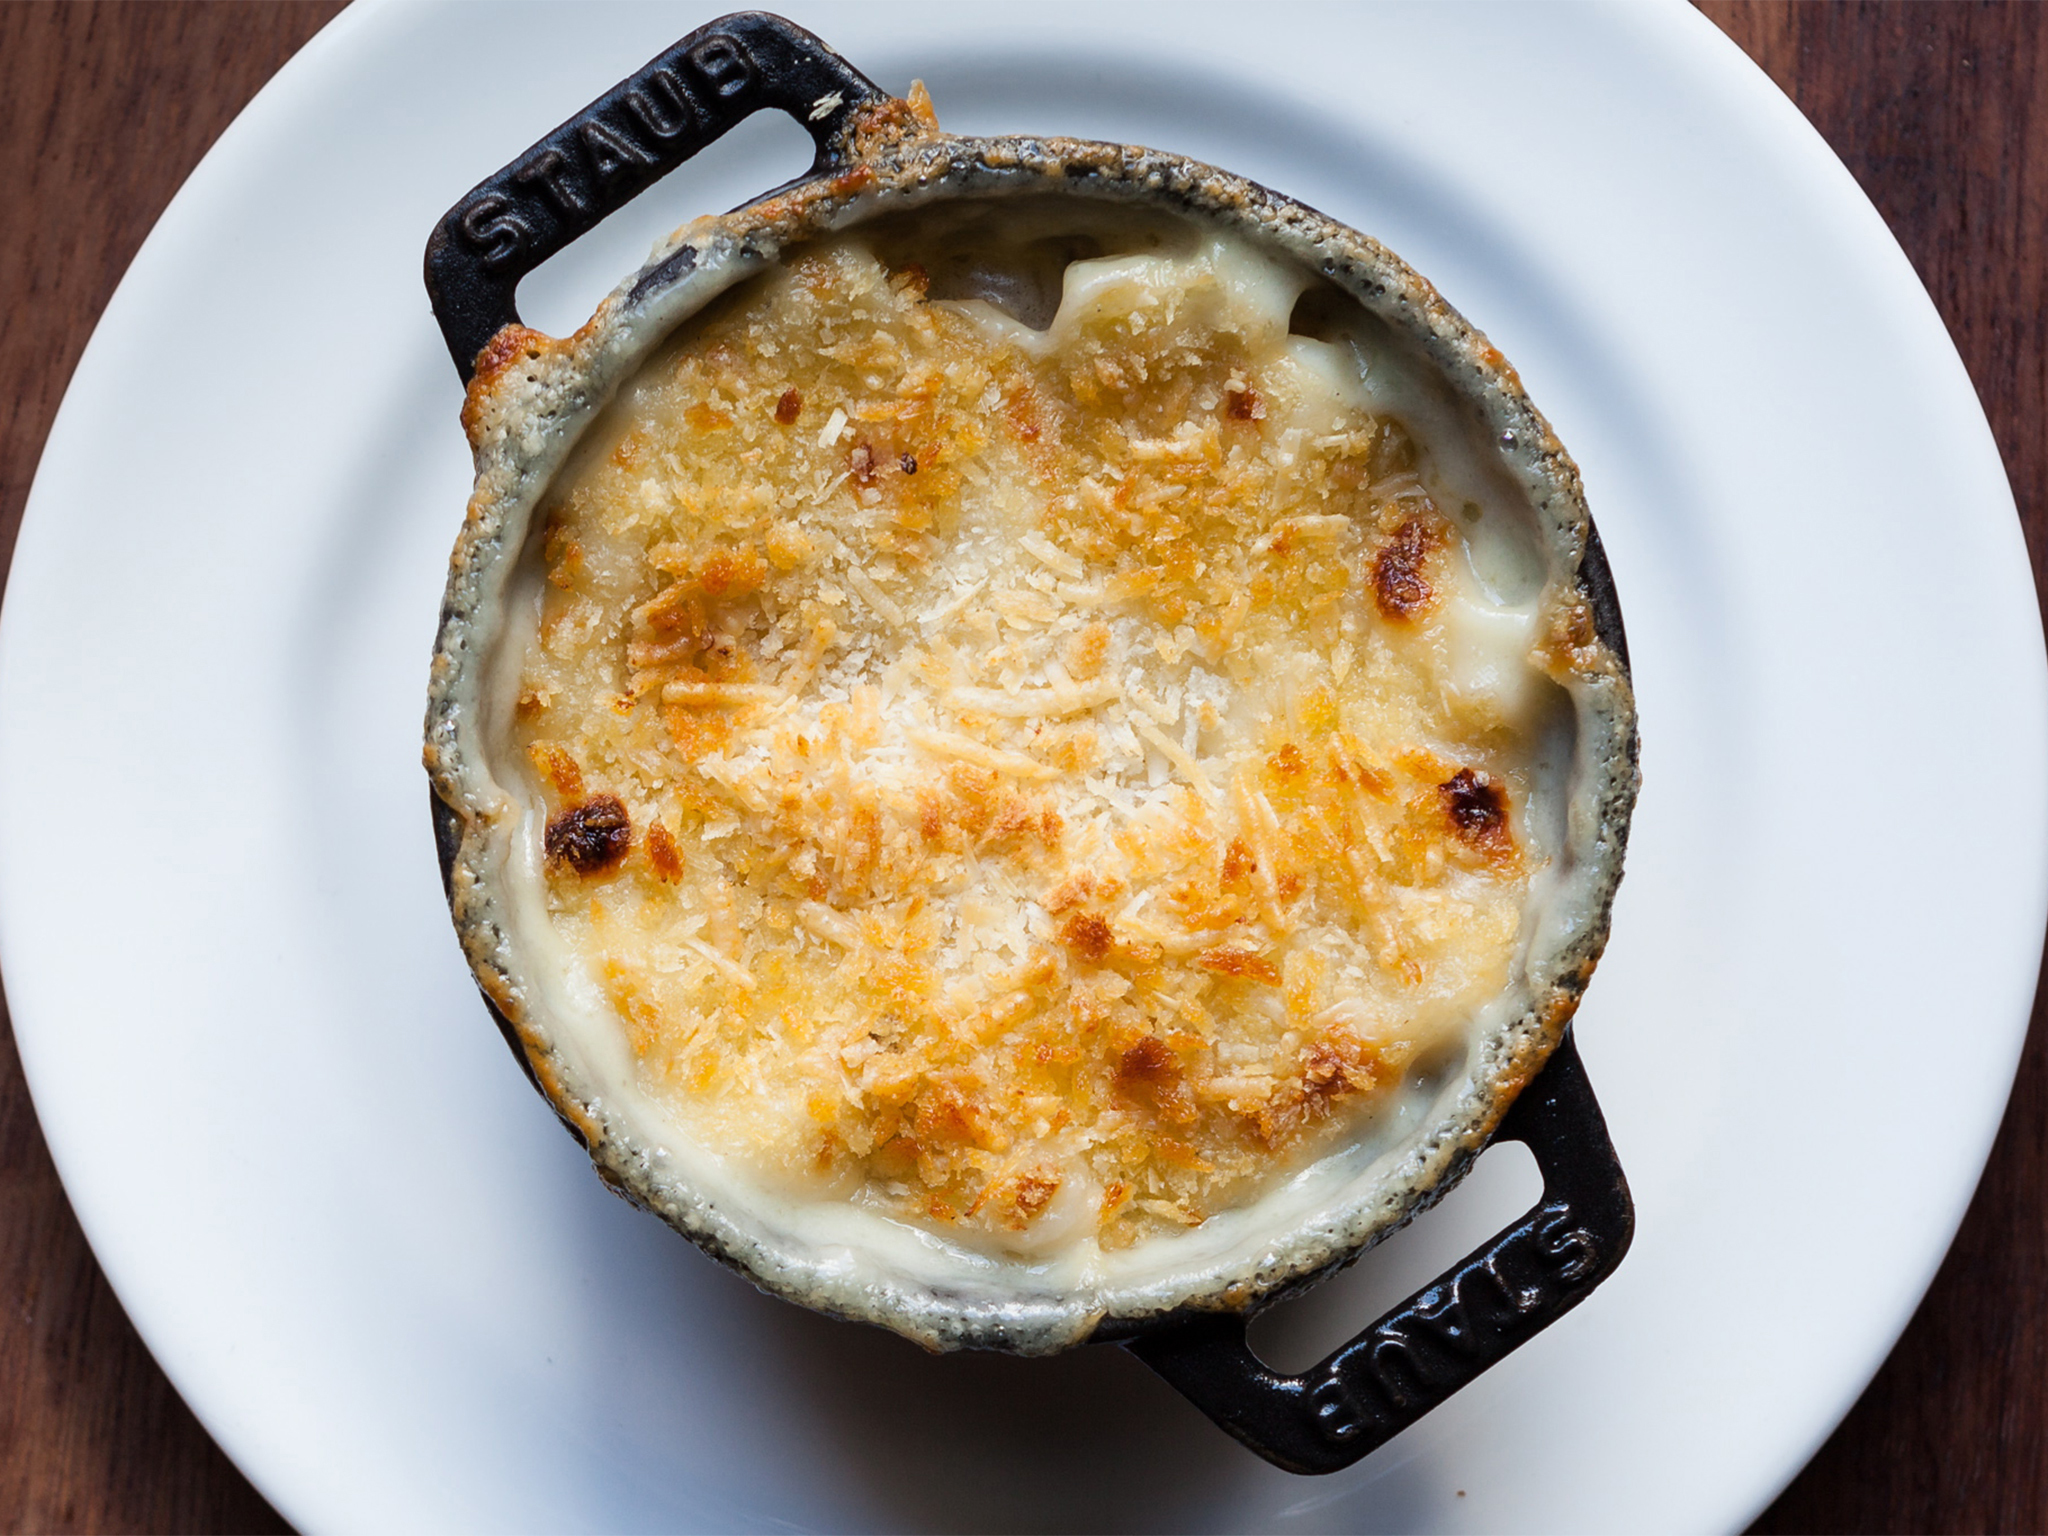 Mac 'n' cheese at Hawksmoor Seven Dials